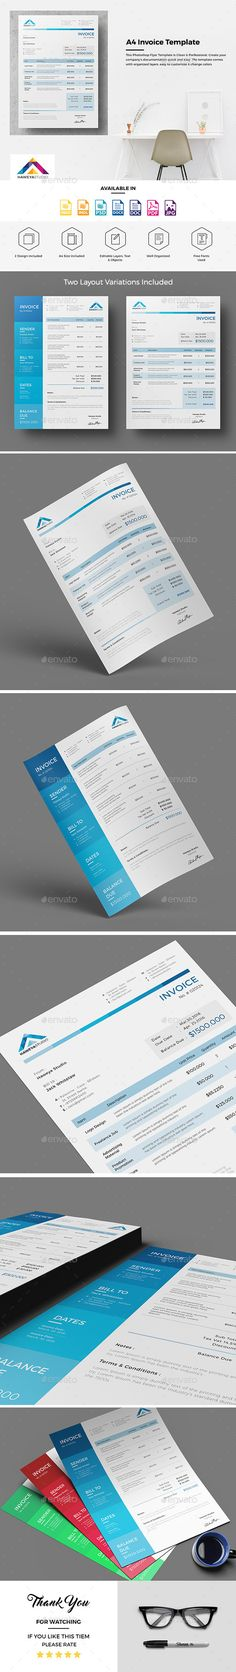 Invoice Excel by Design_circle This is a Professional Business - invoice spreadsheet template free